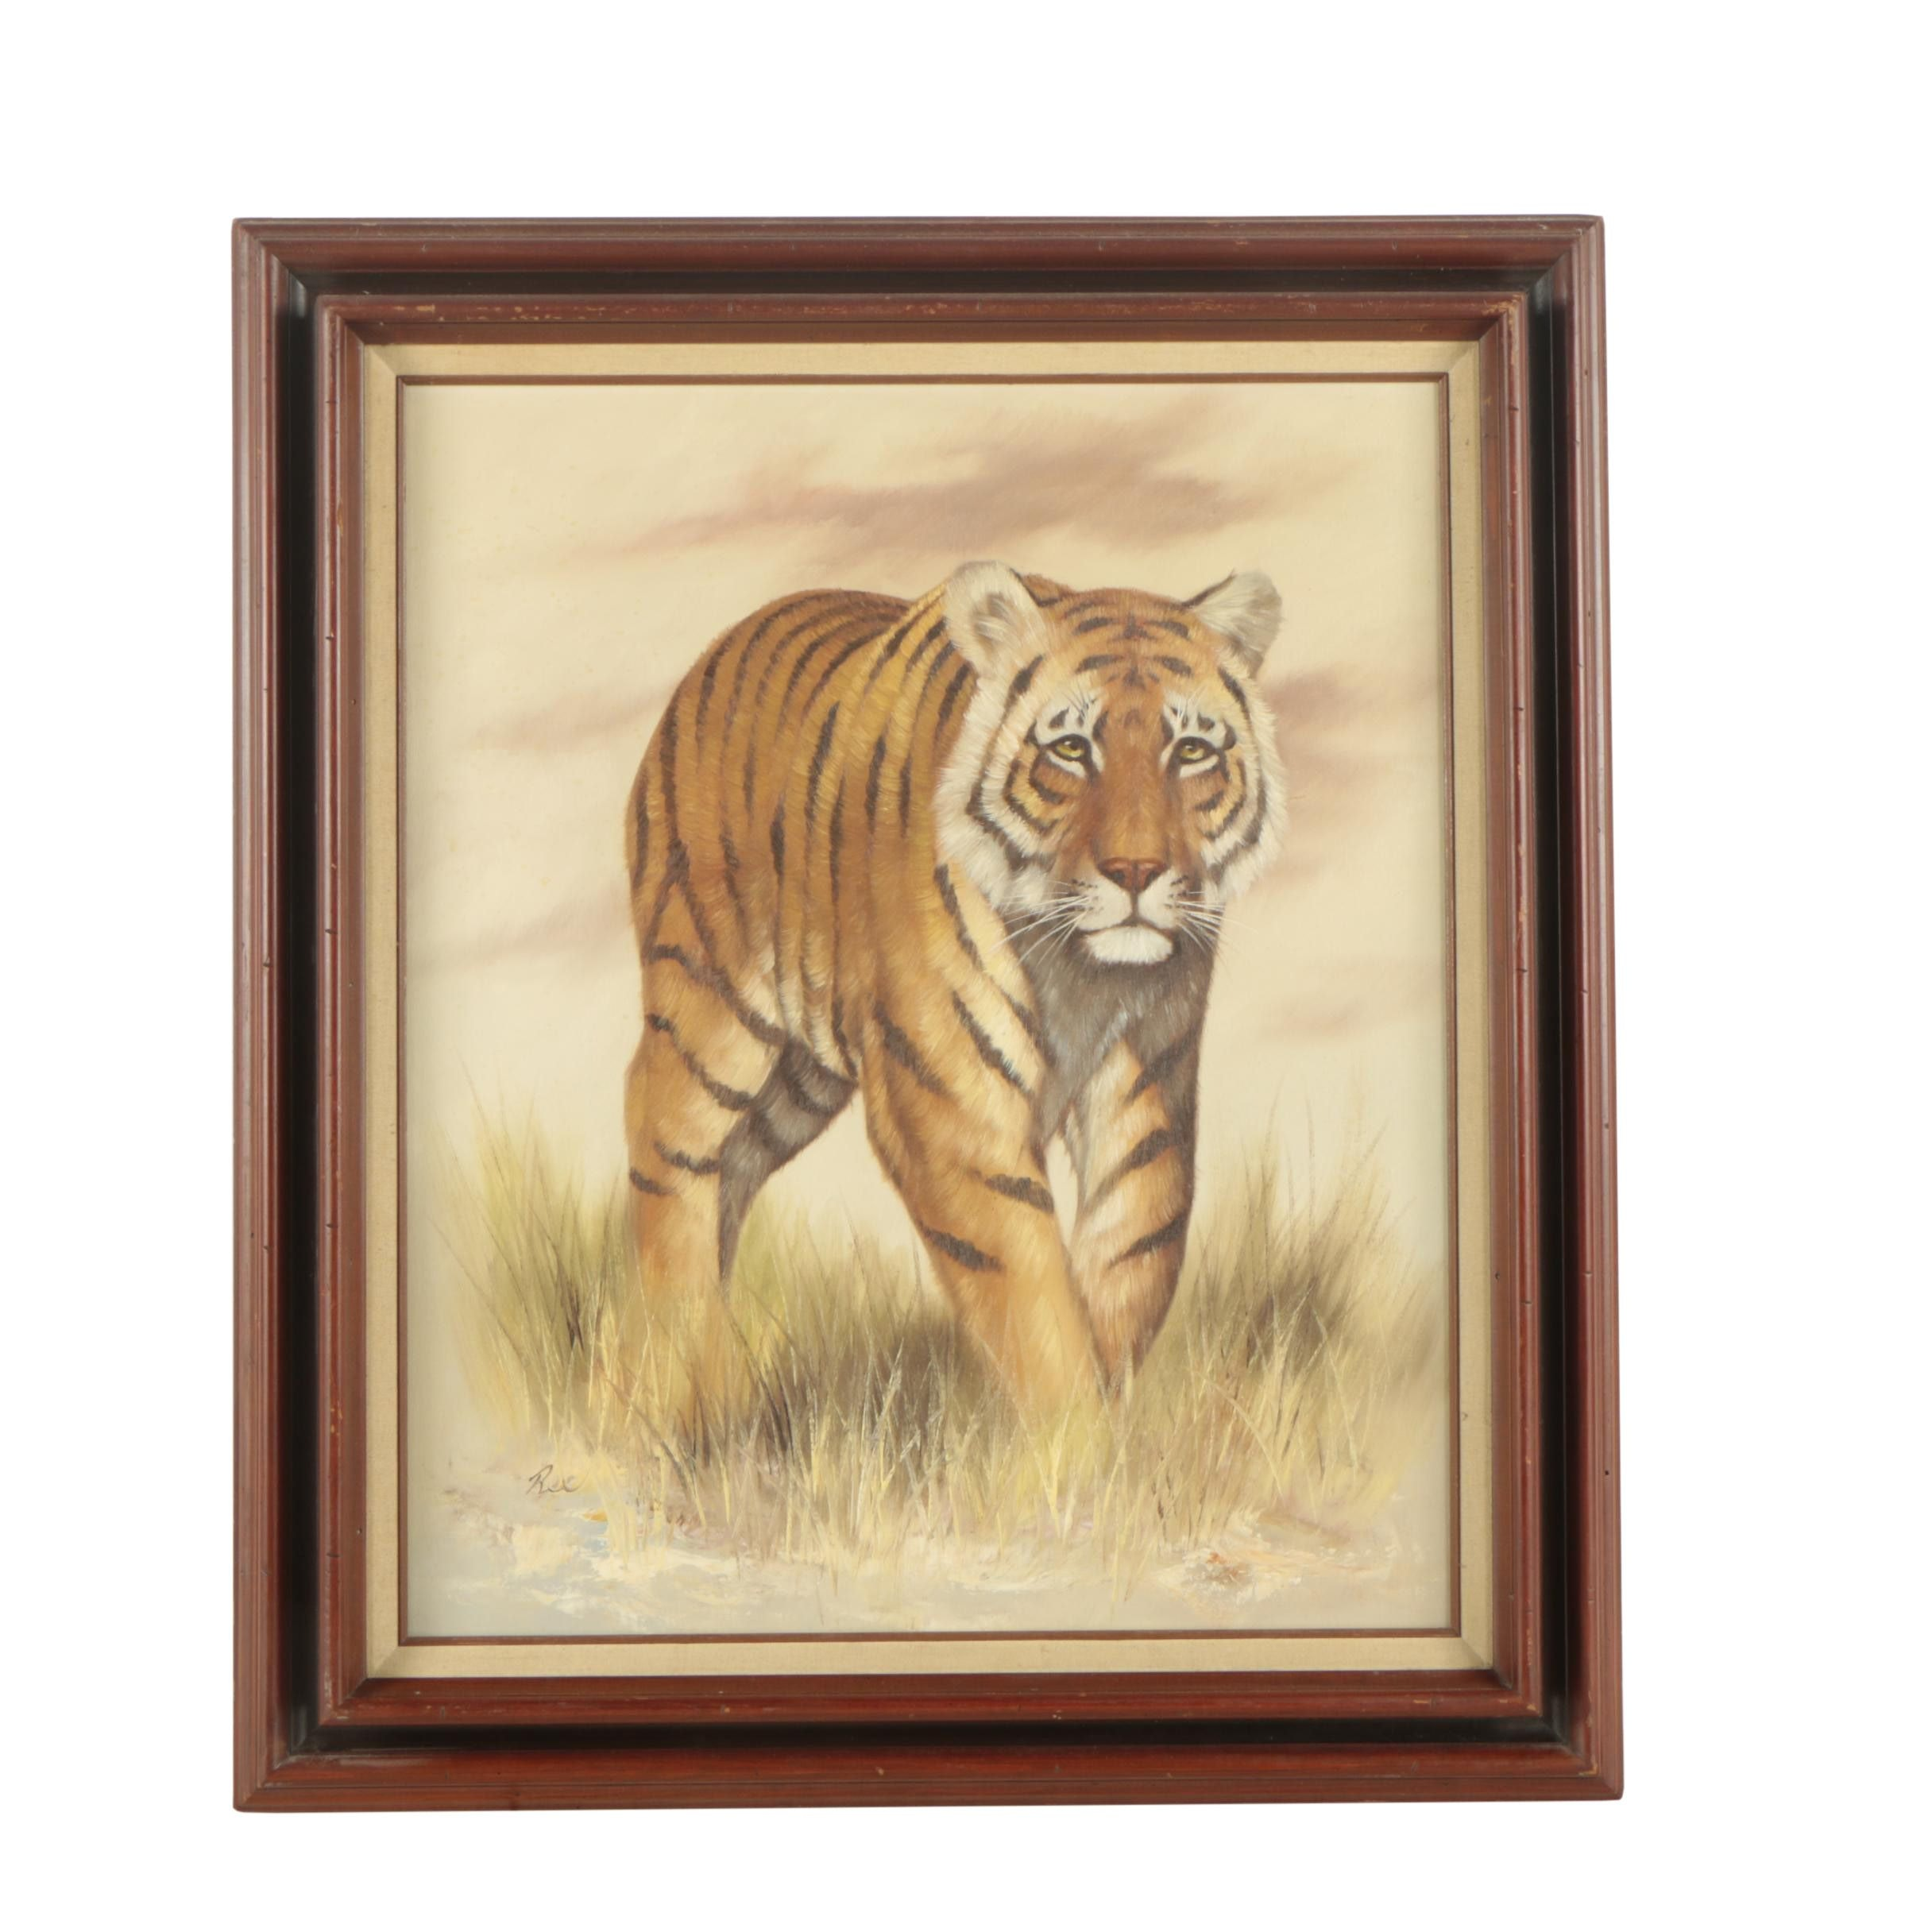 Vintage Oil Painting on Canvas of a Bengal Tiger